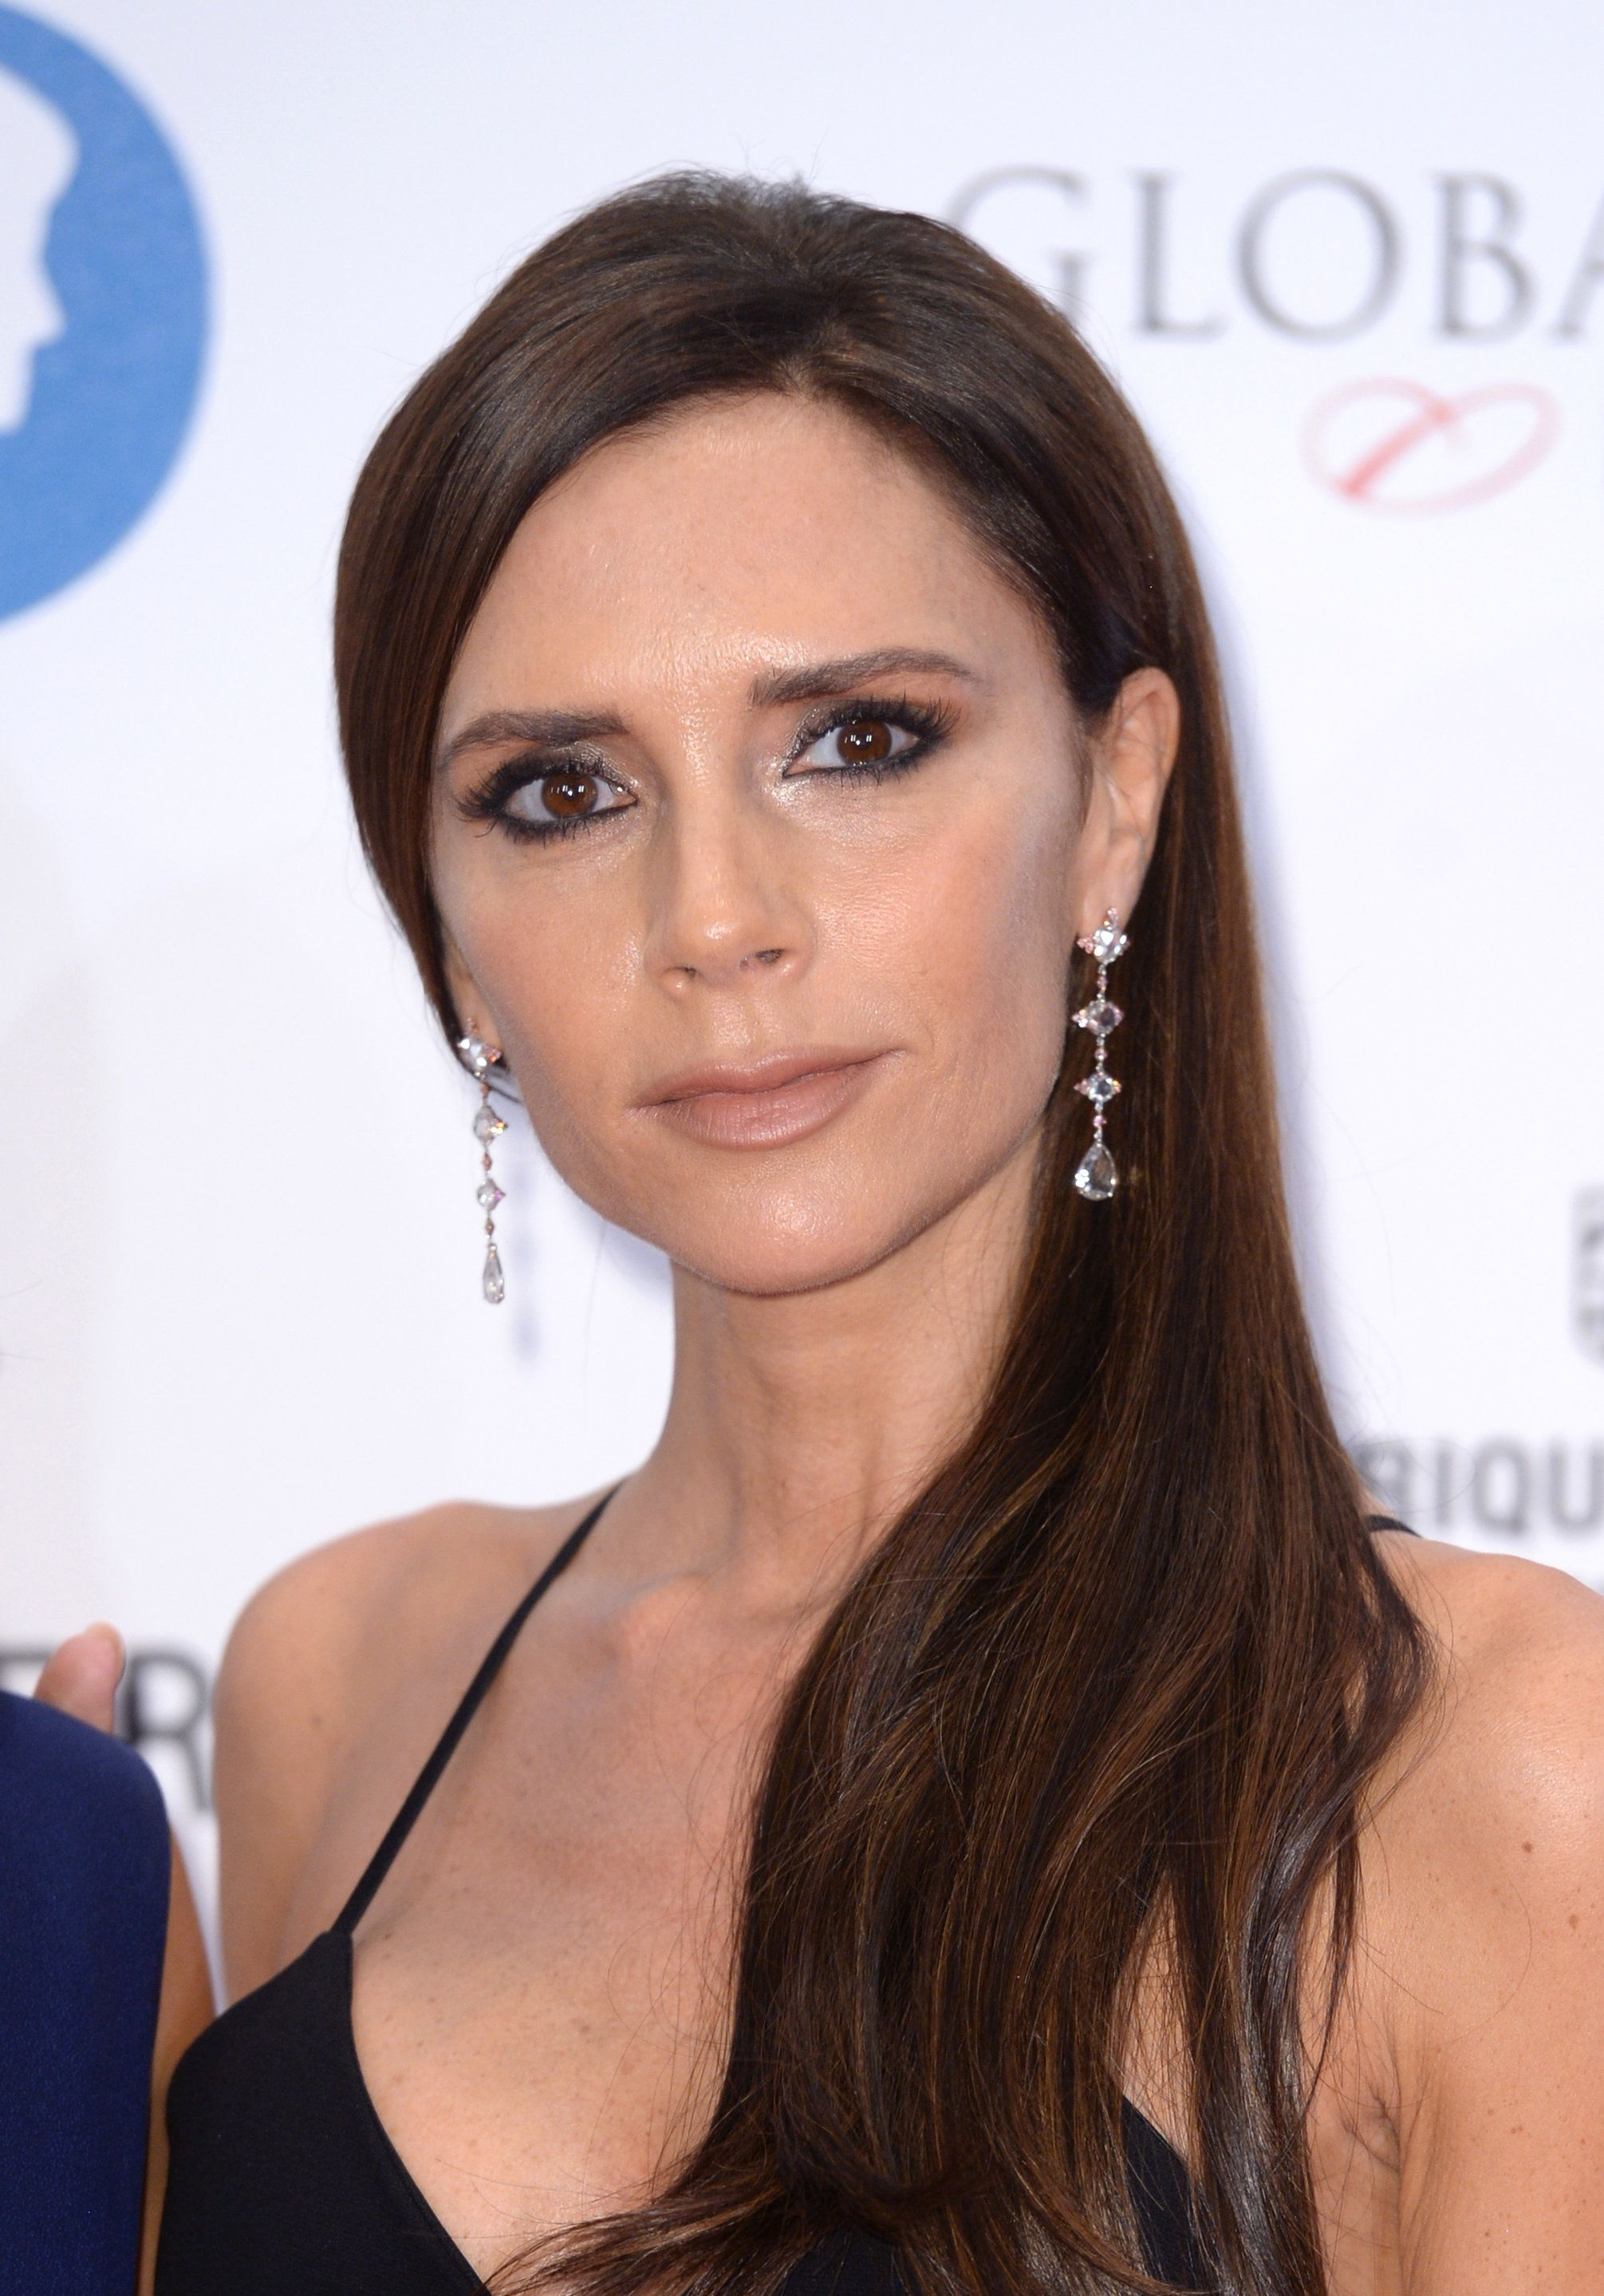 Victoria Beckham Admits She 'Wasn't The Best Spice Girl', But We